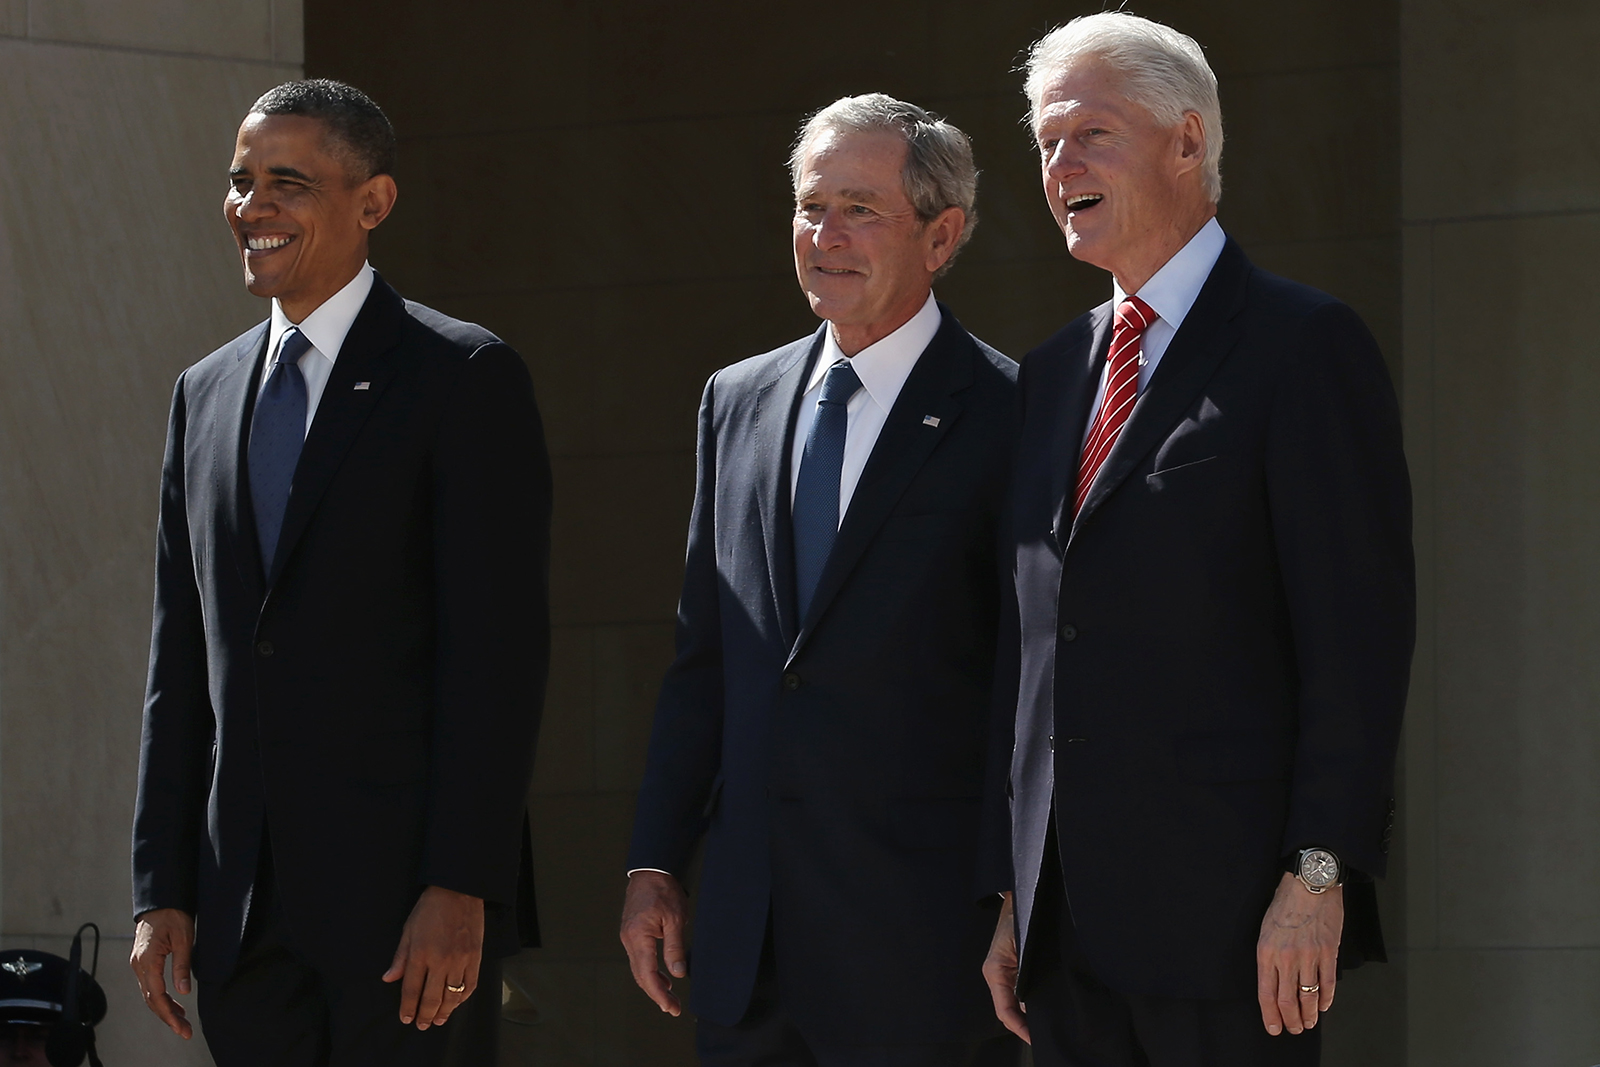 From left to right, former presidents Barack Obama, George W. Bush and Bill Clinton attend the opening ceremony of the George W. Bush Presidential Center in Dallas, Texas, on April 25, 2013.